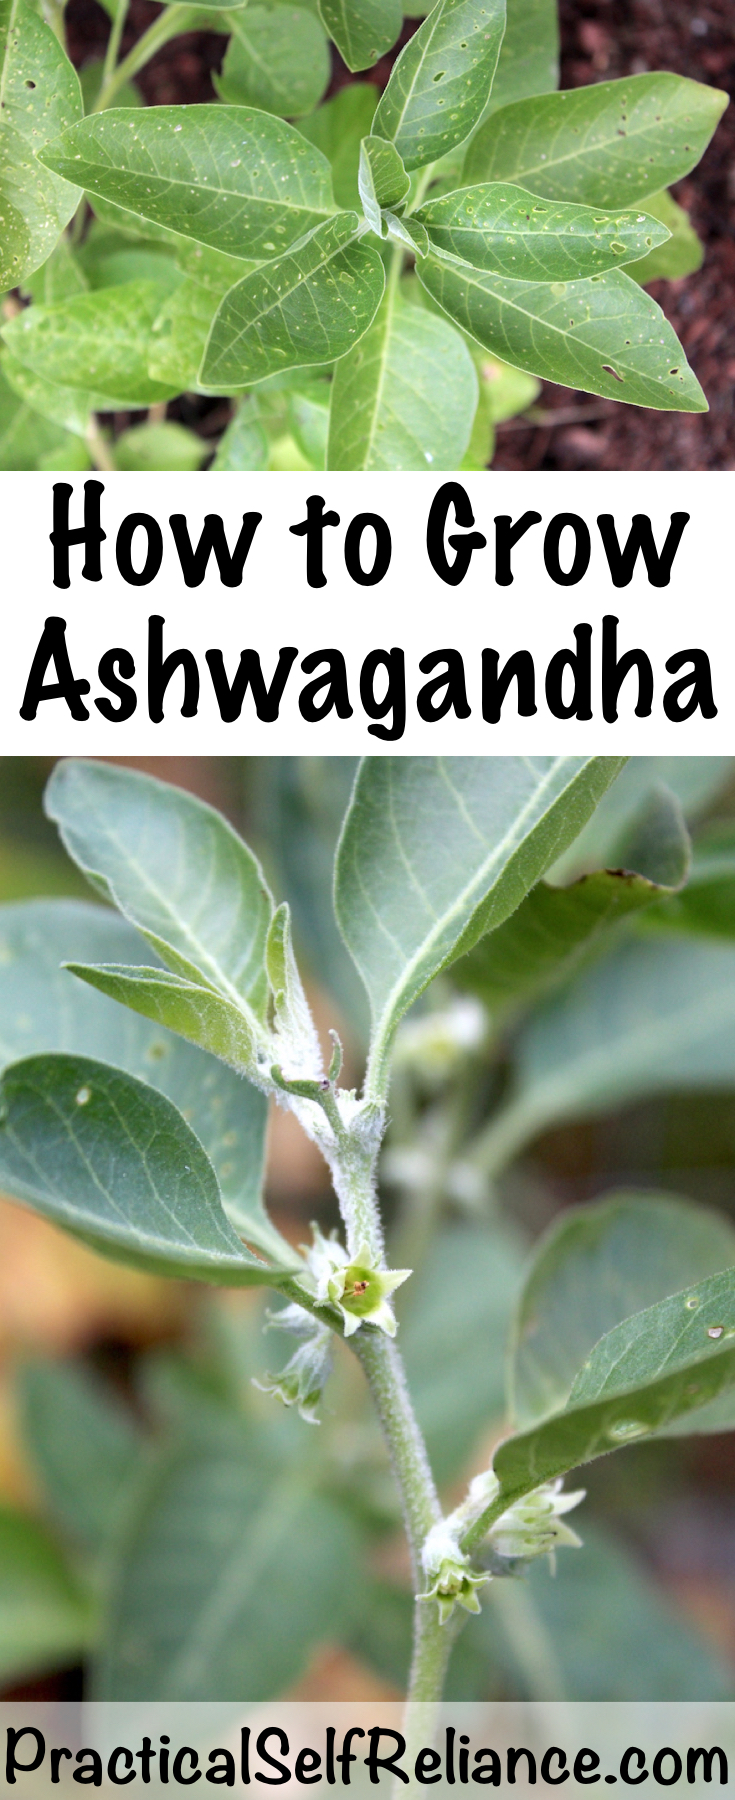 How to Grow Ashwagandha